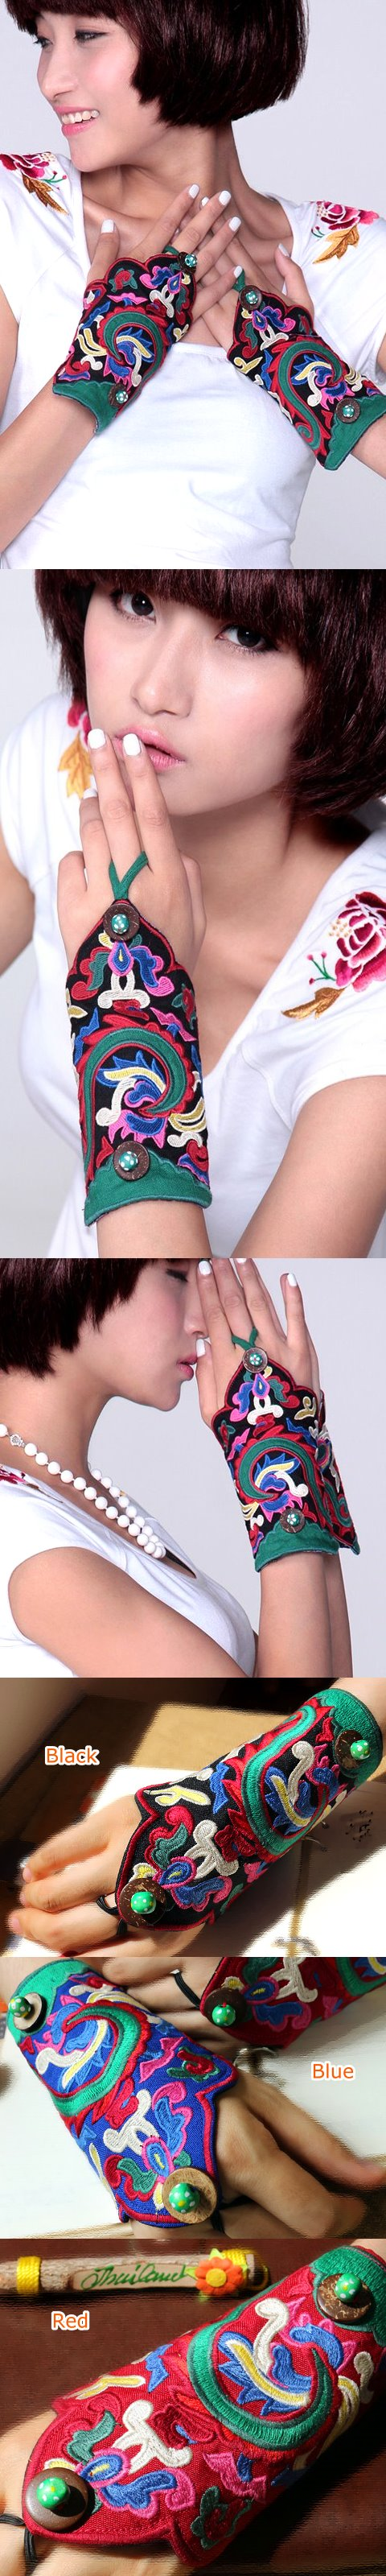 Versatile Ethnic Embroidery Mitt Gloves - (Multi-color)